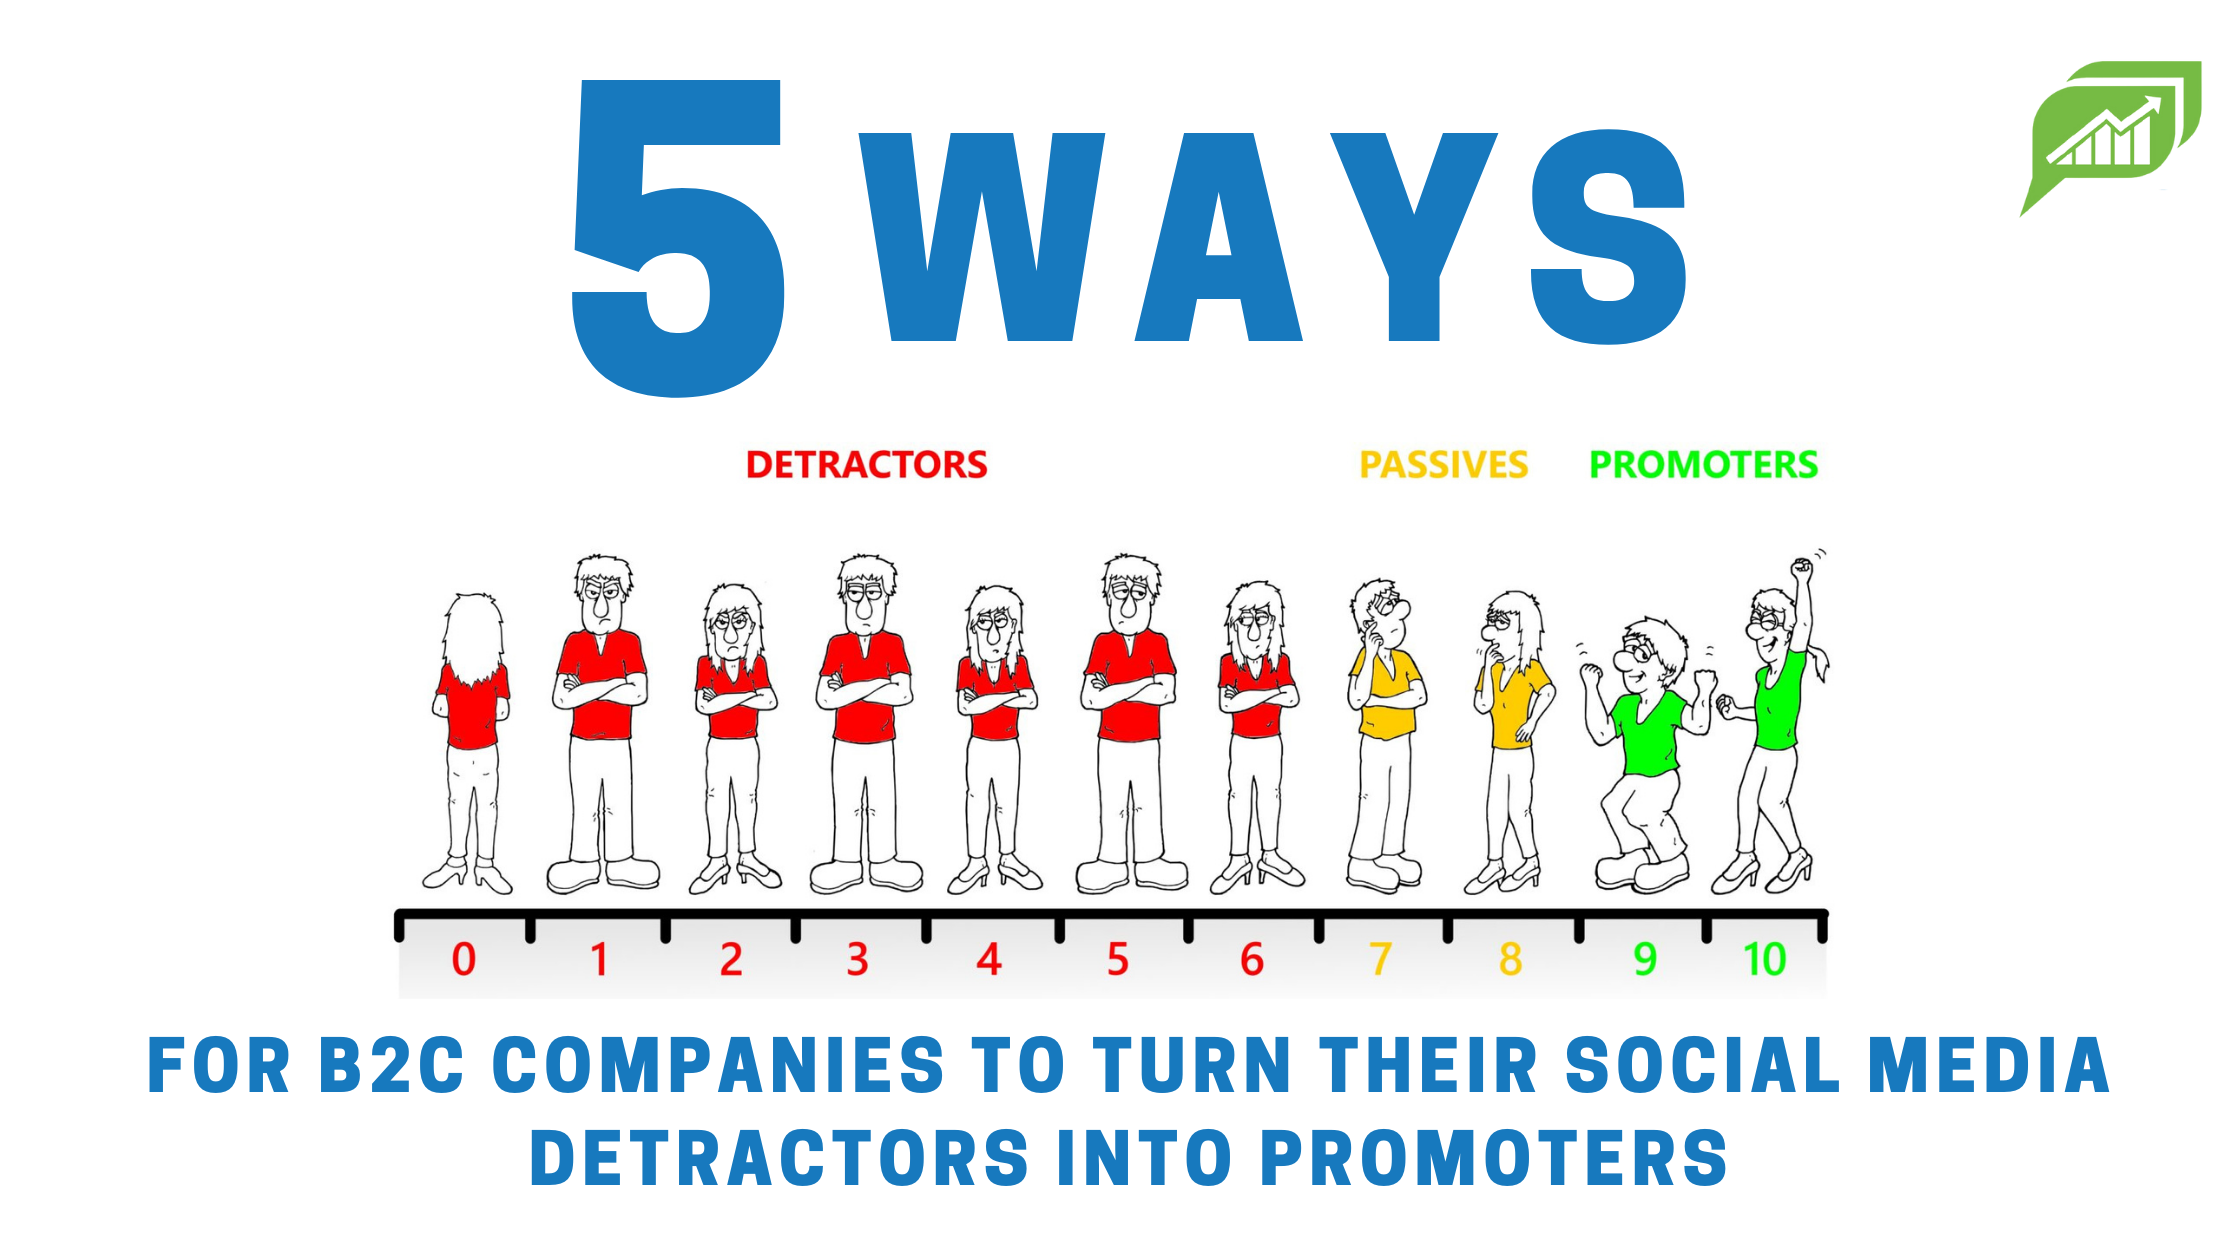 How to turn detractors to promoters